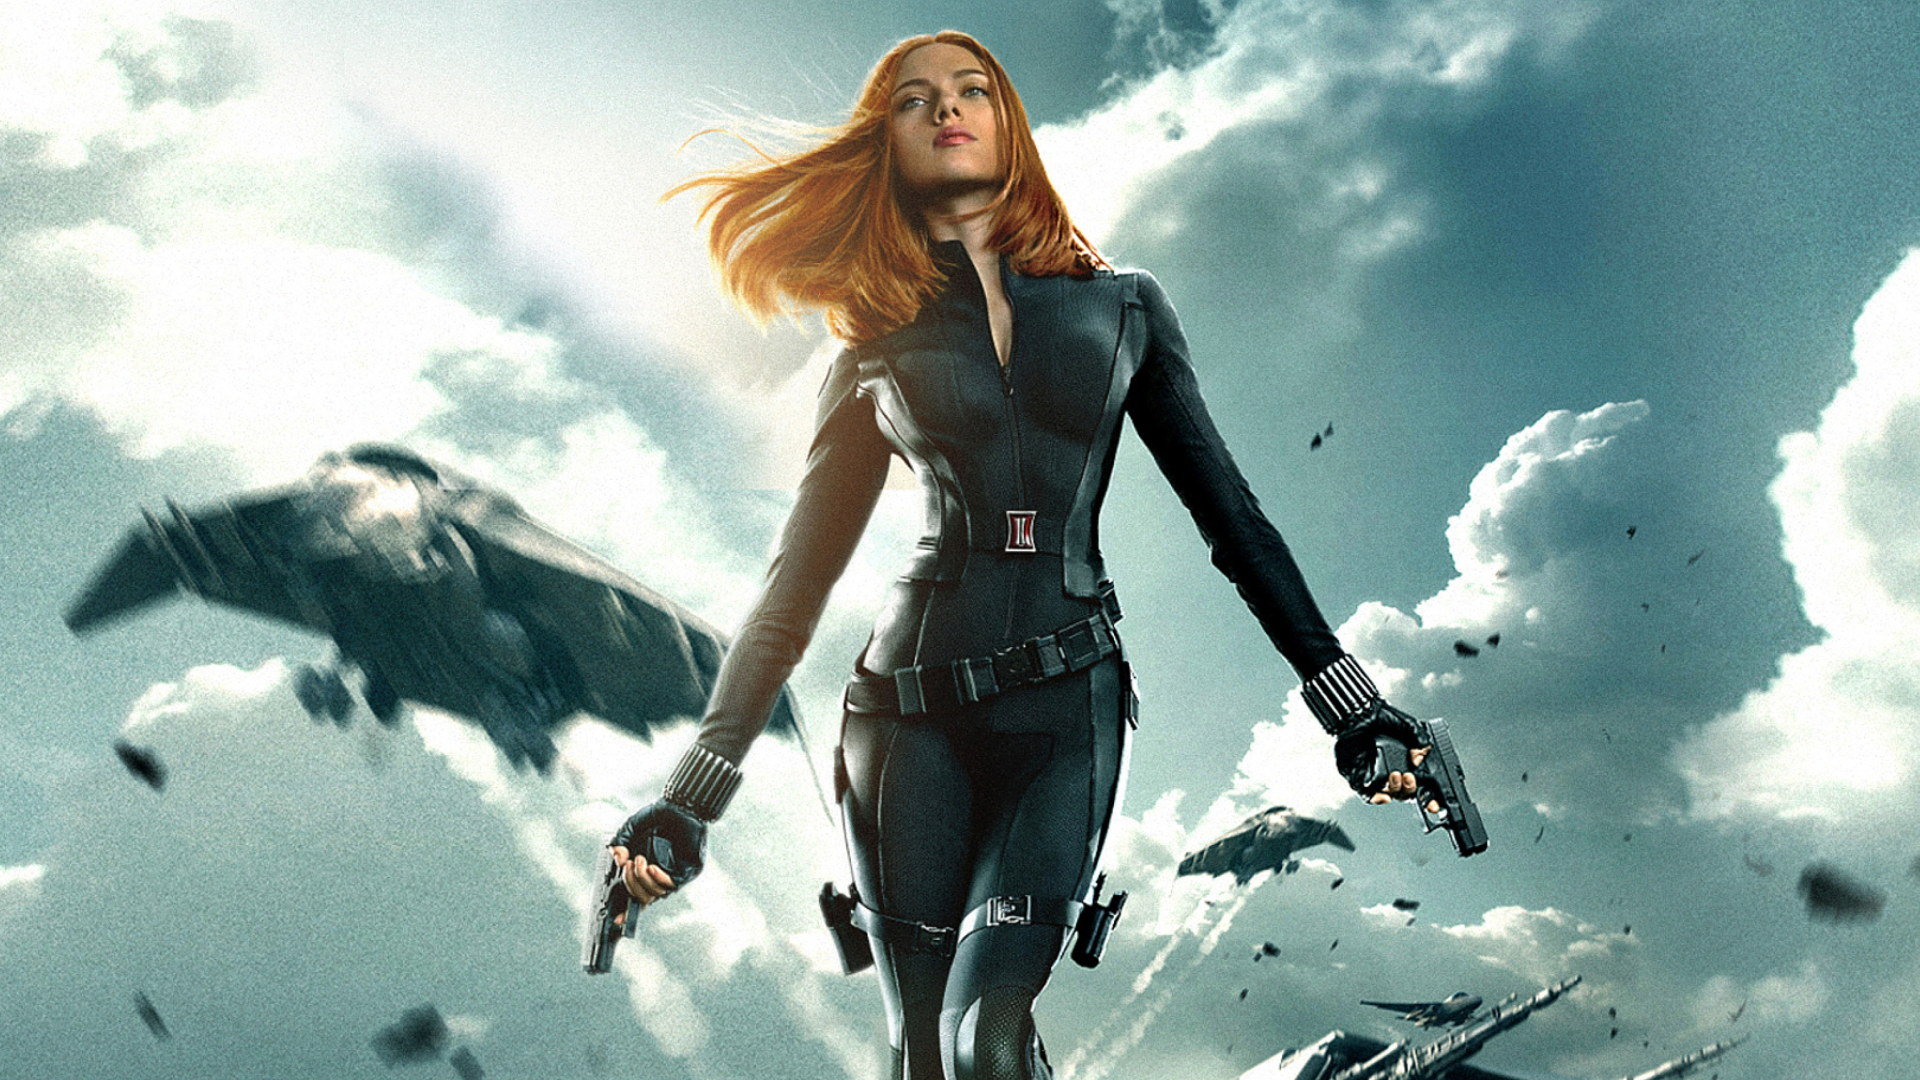 Download 1920x1080 Black Widow The Avengers Wallpaper